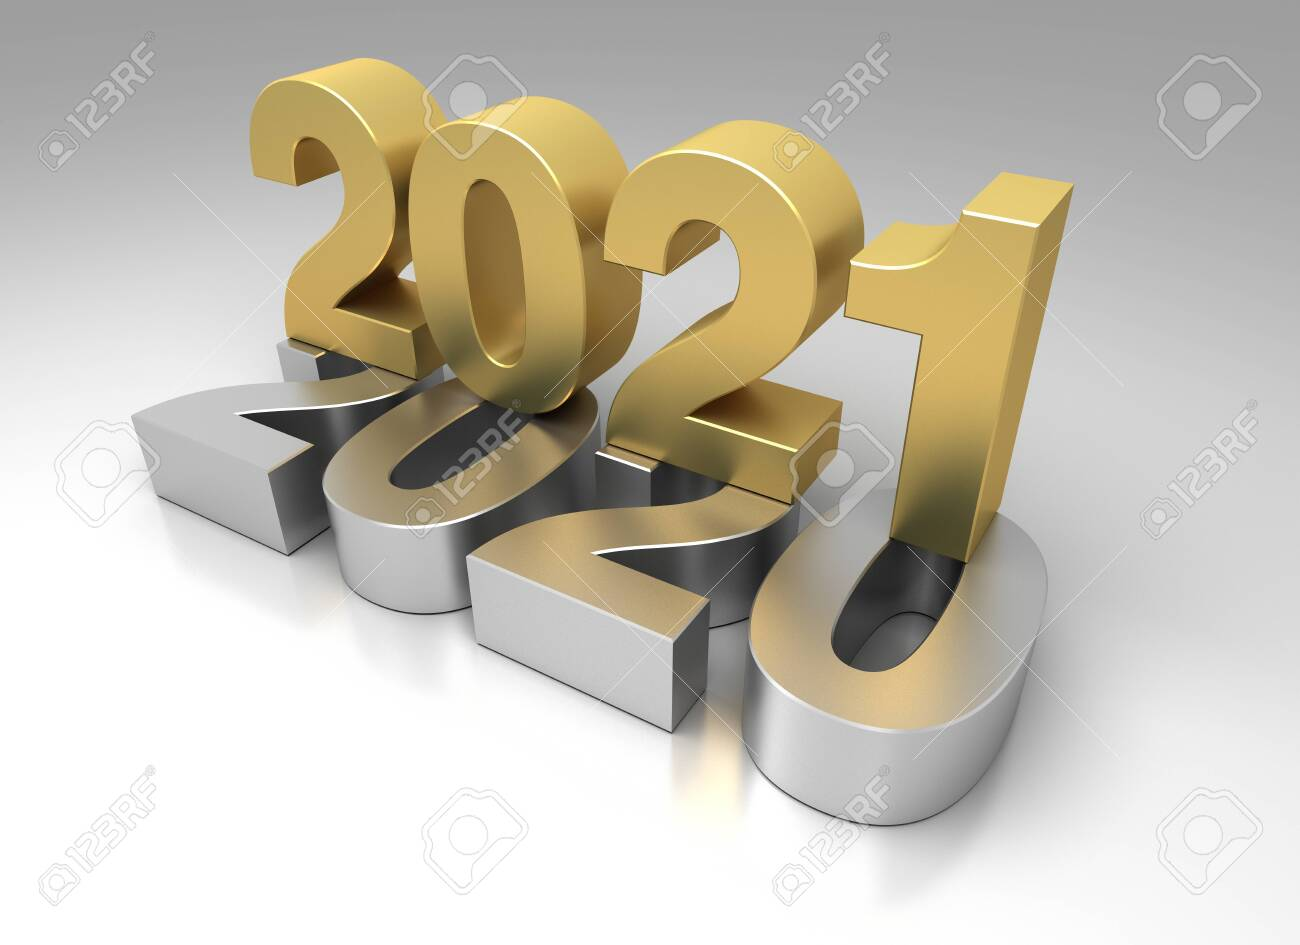 New Year 2021 from 2020 - 147326014